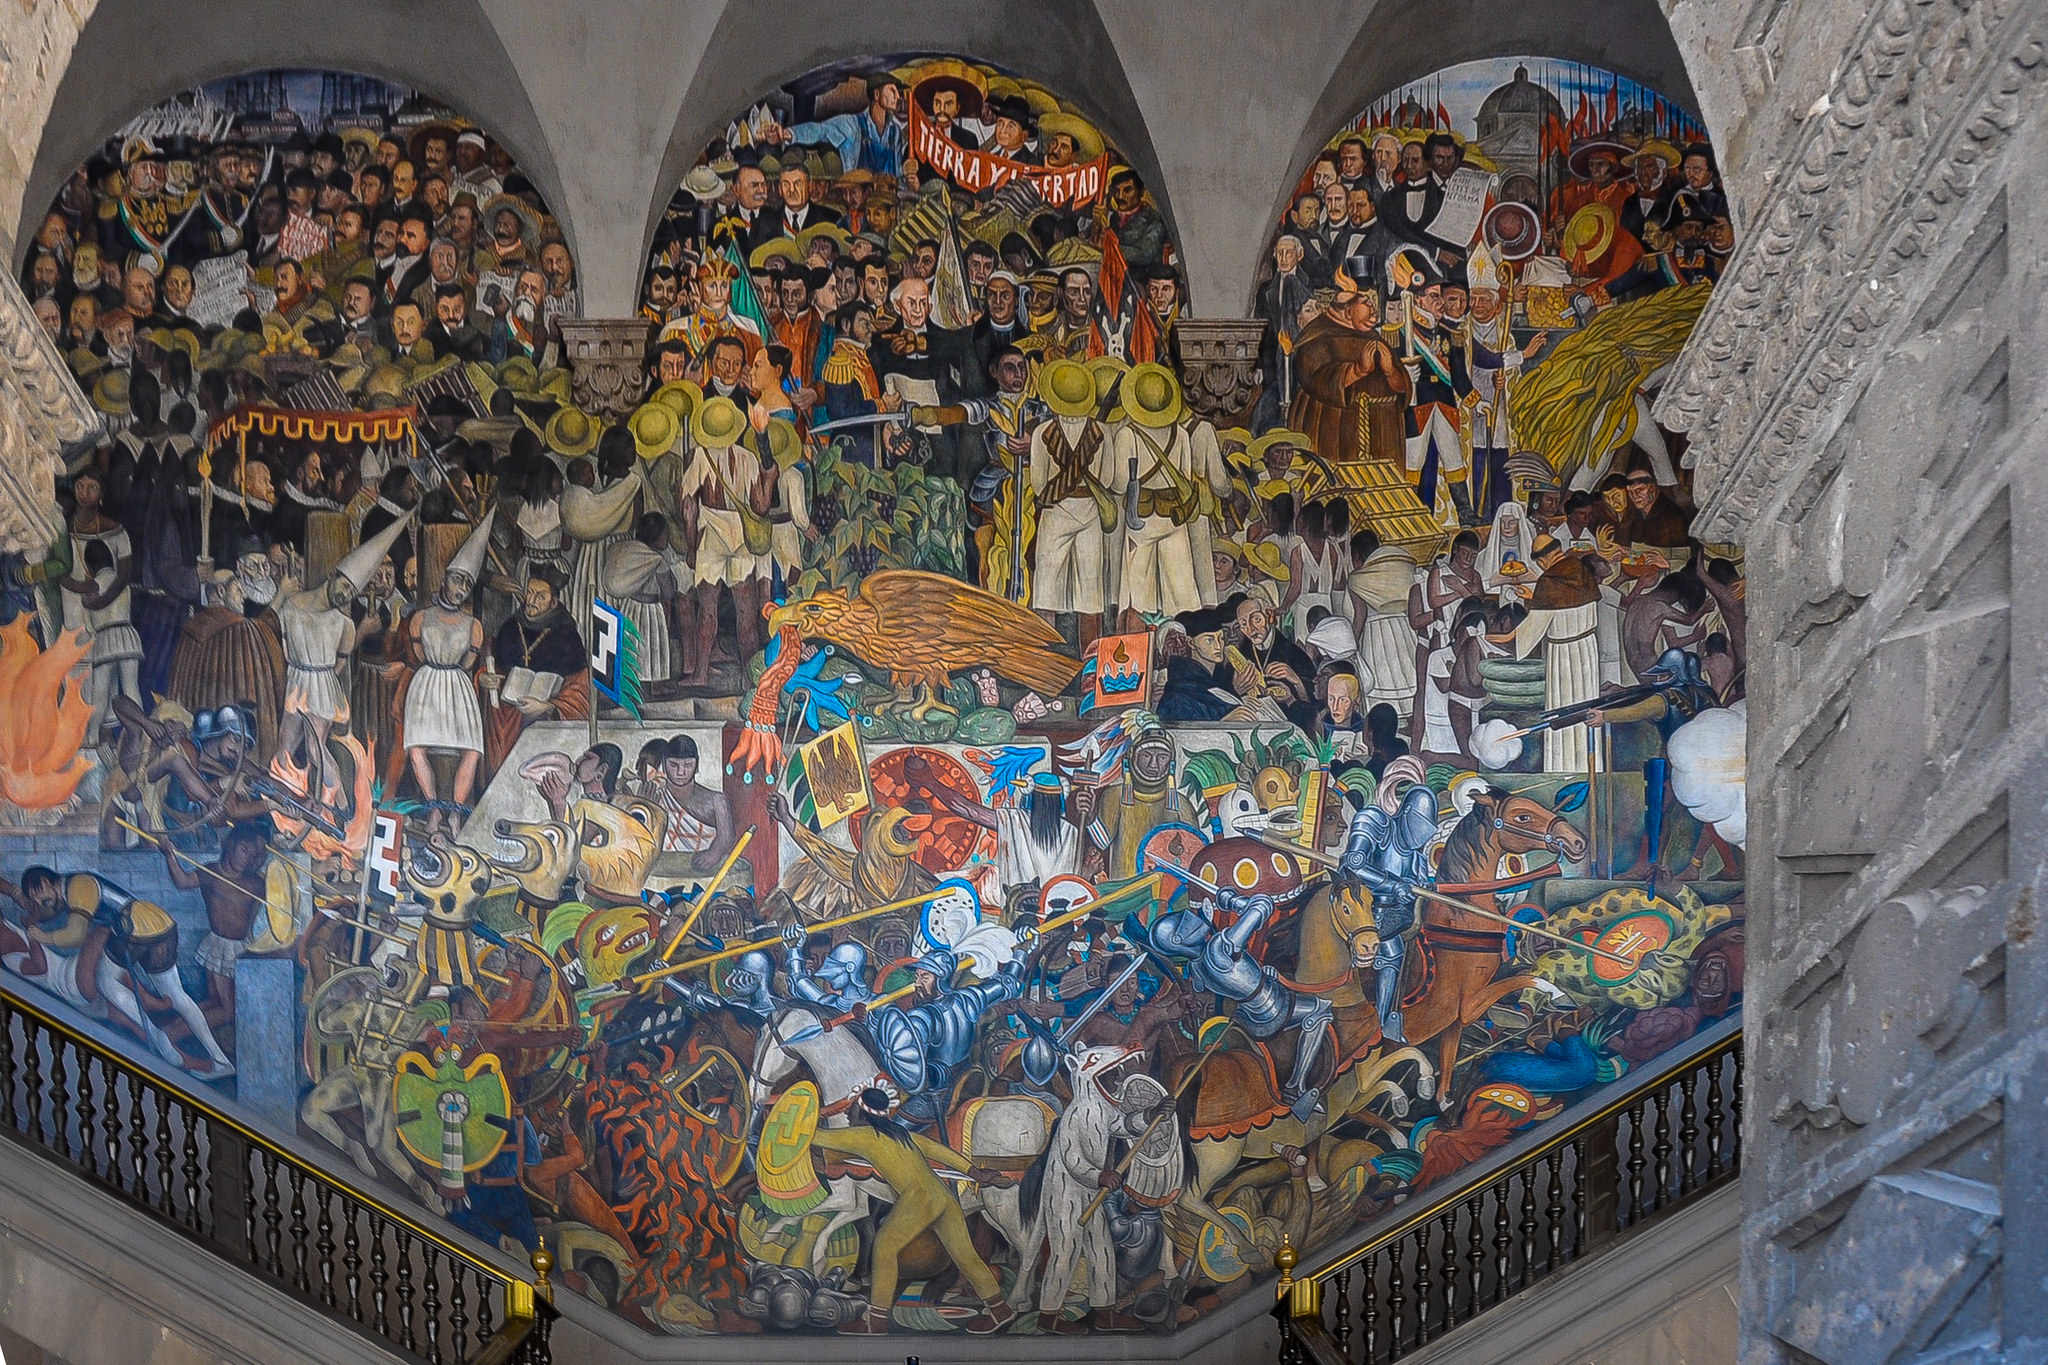 National Palace - Diego Rivera Mural